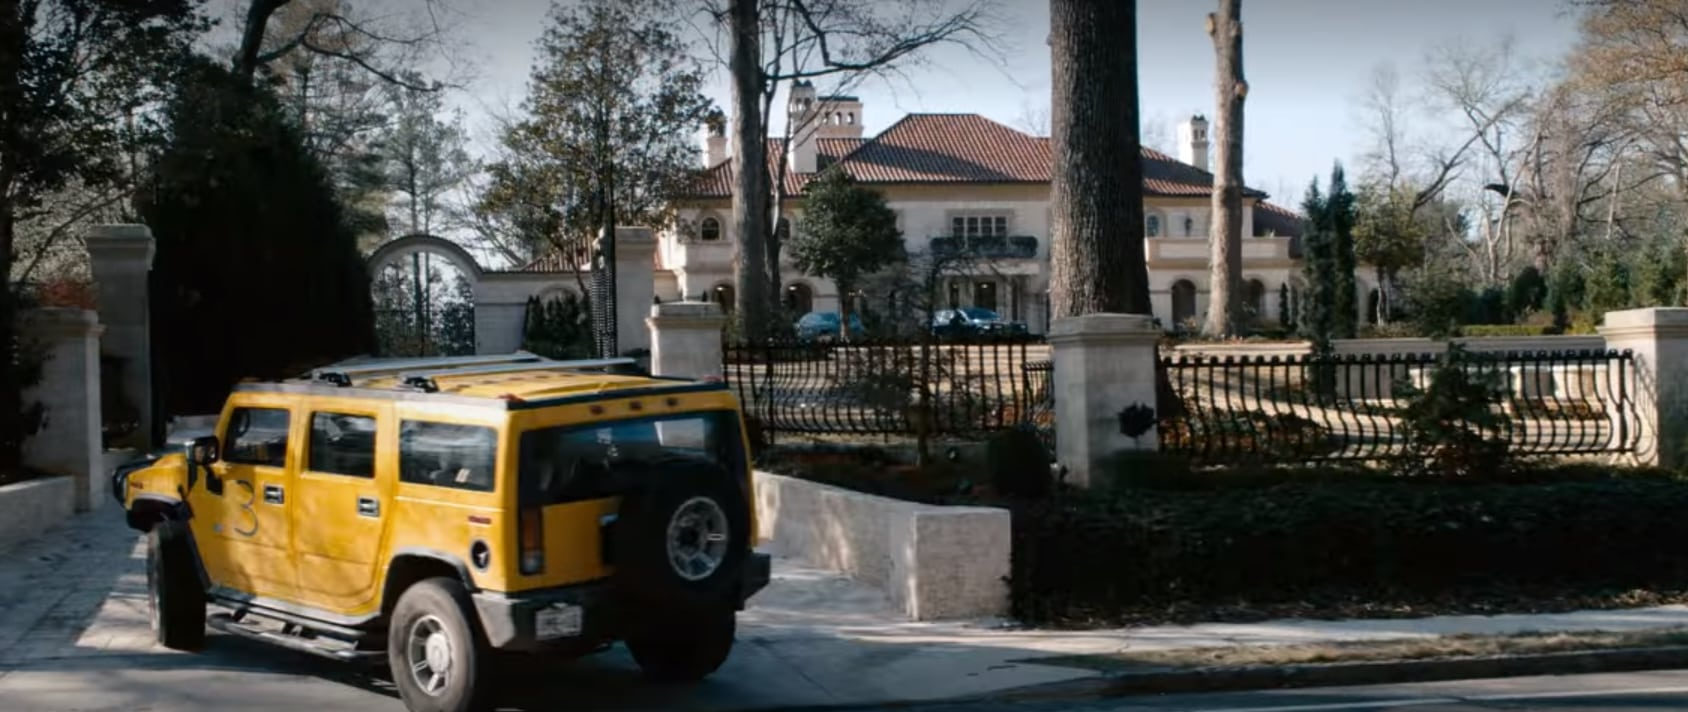 When the group reaches Hollywood, Tallahassee takes them to the mansion of Bill Murray